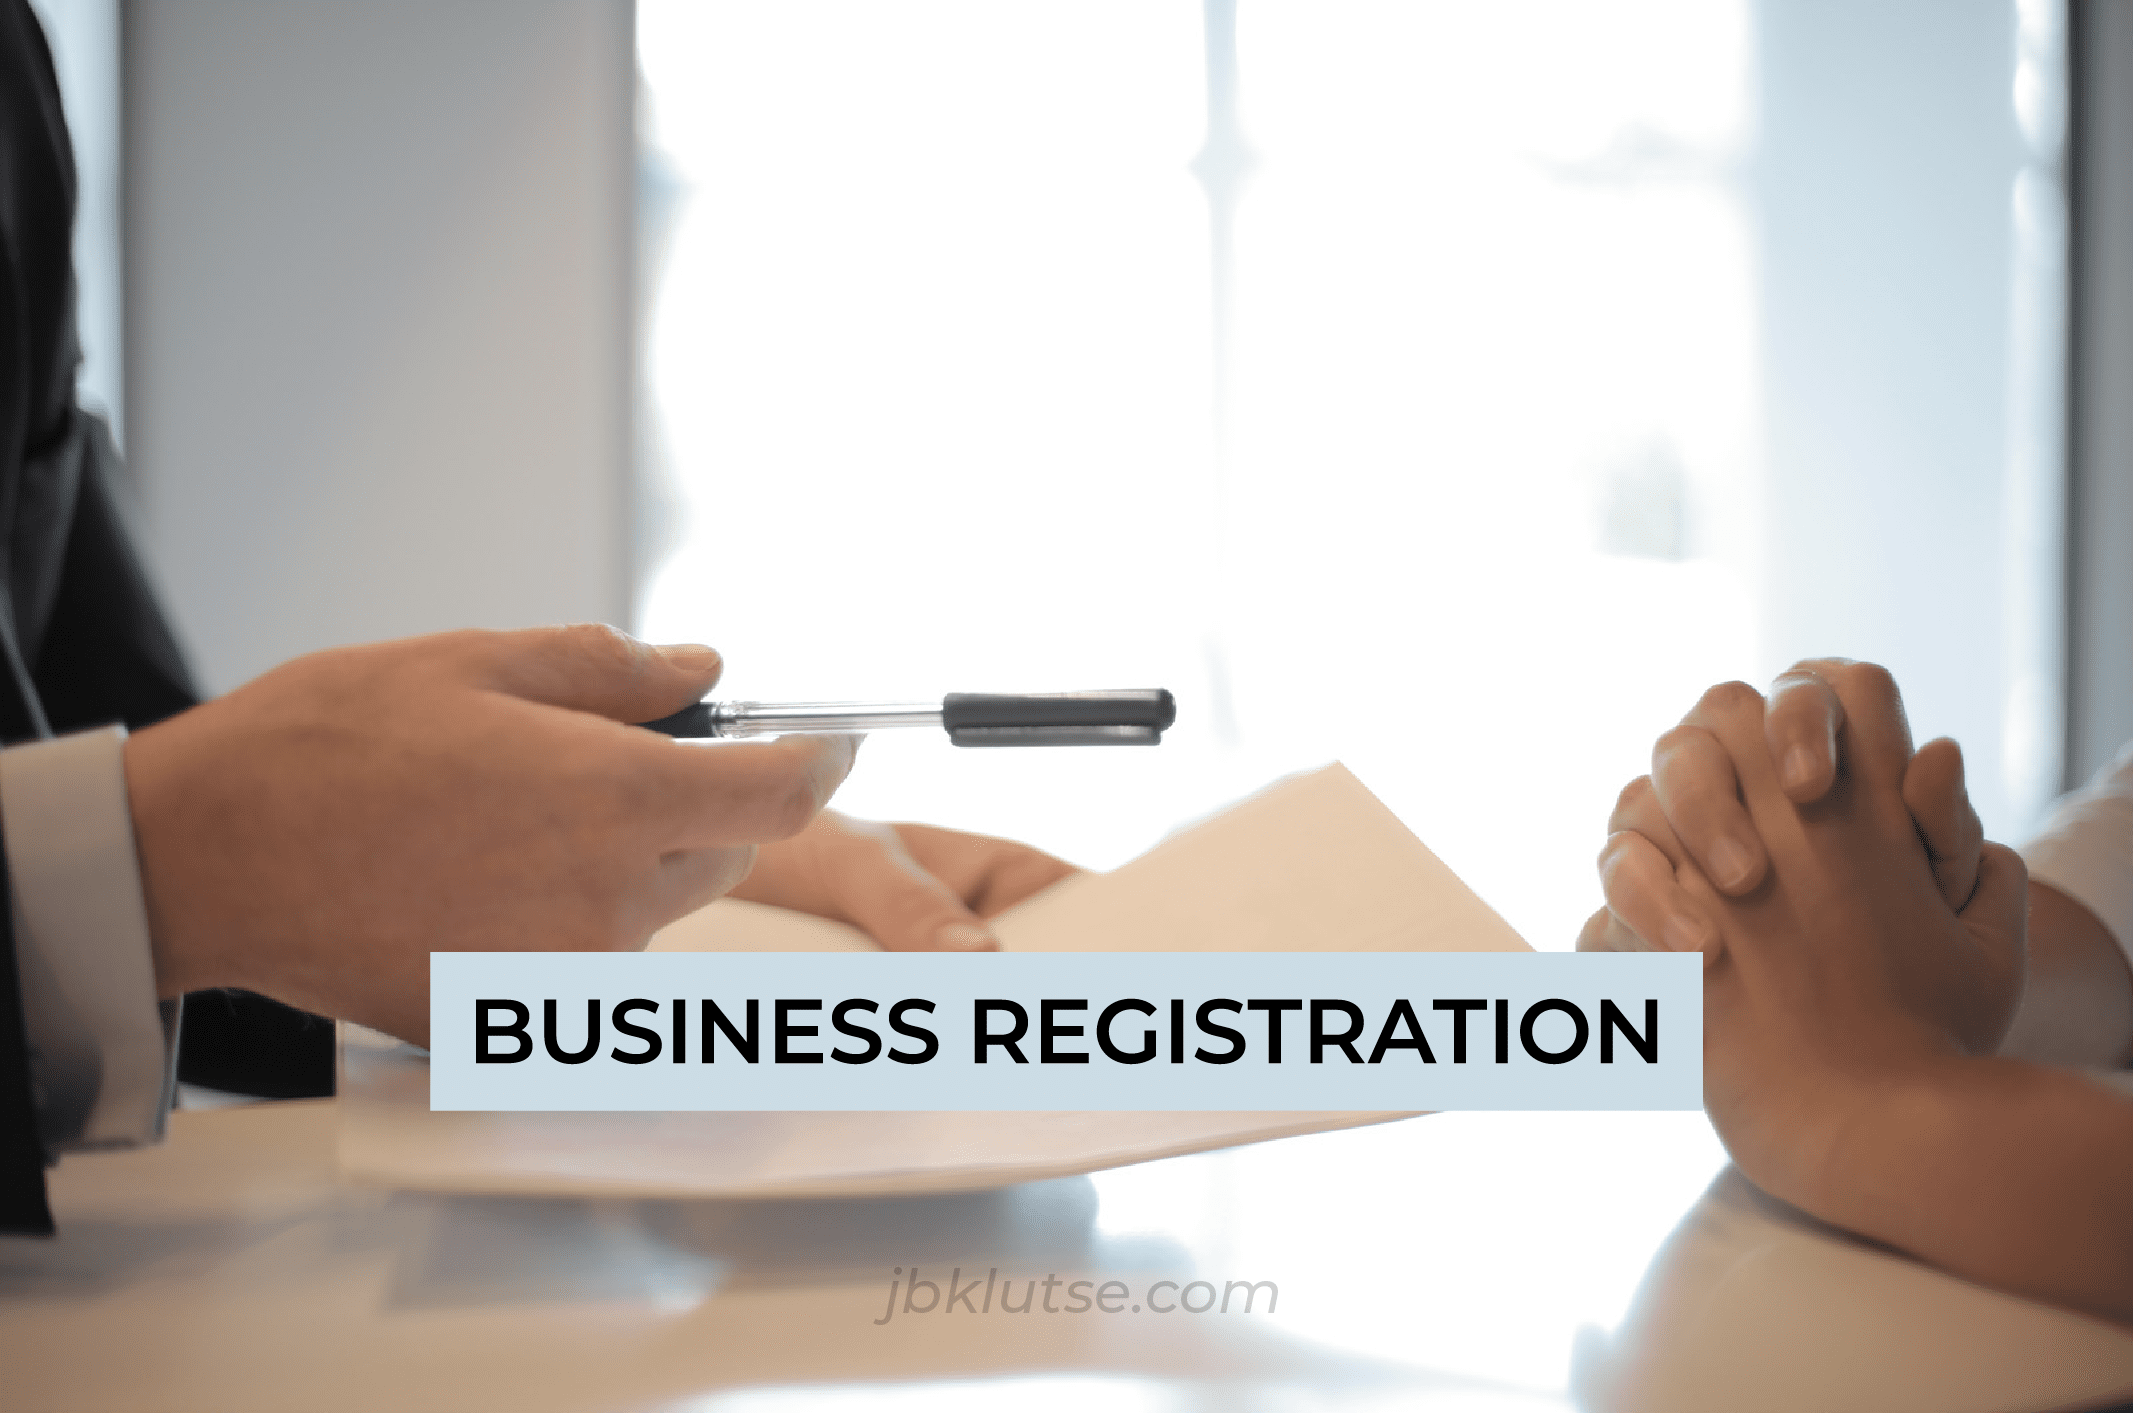 Find out how you can register a small business in Ghana